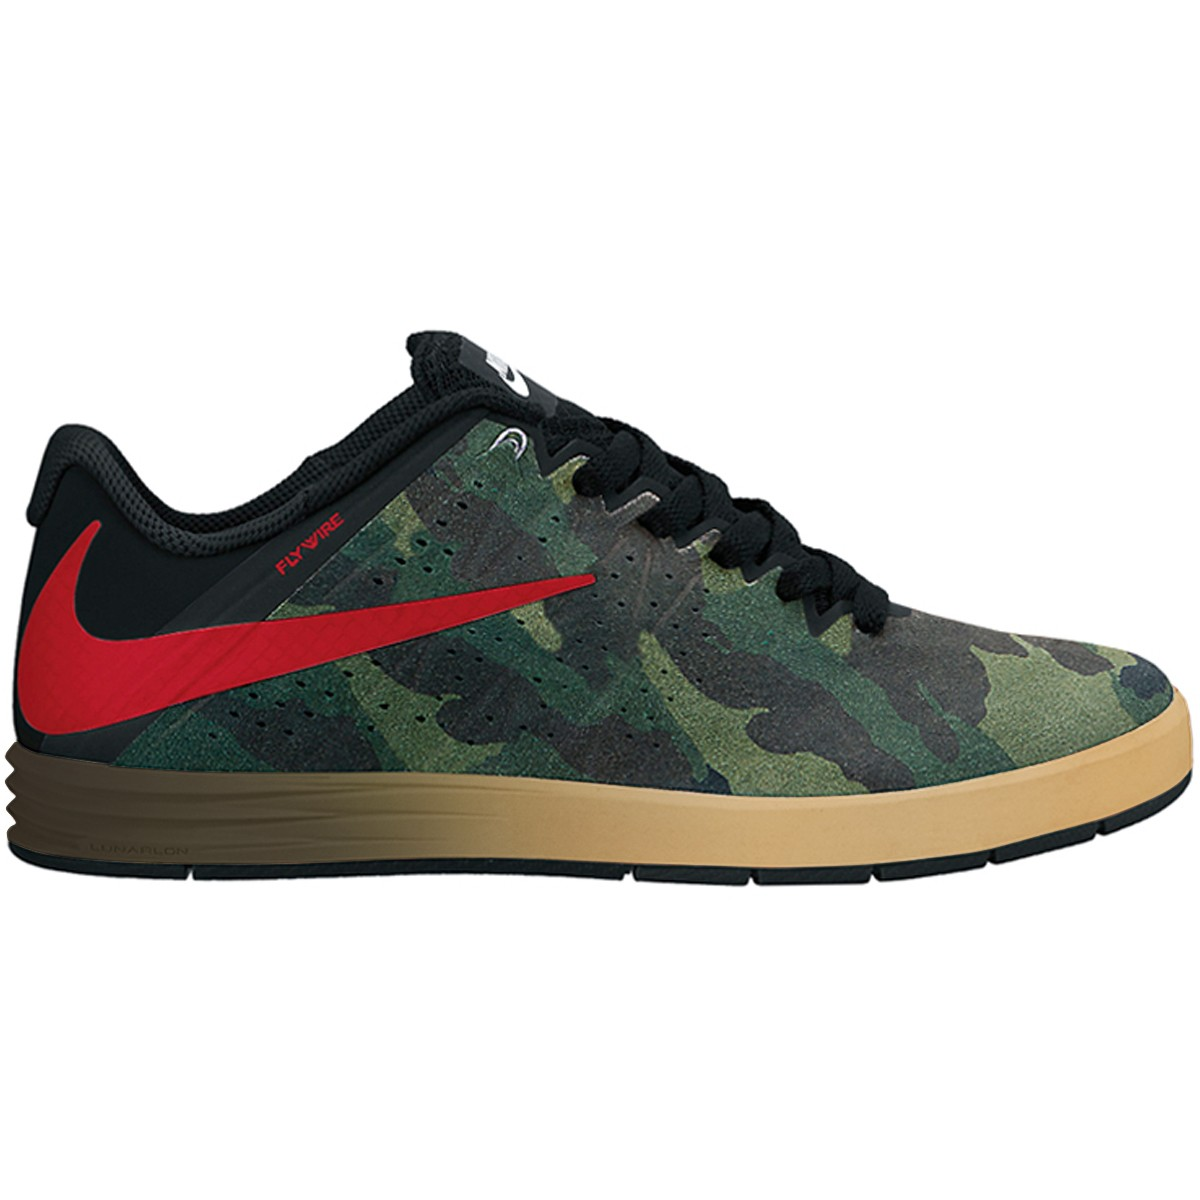 lowest price f32fa c575c Nike Paul Rodriguez CTD SB Shoes - Dark DuneGym RedBlack - 10.0